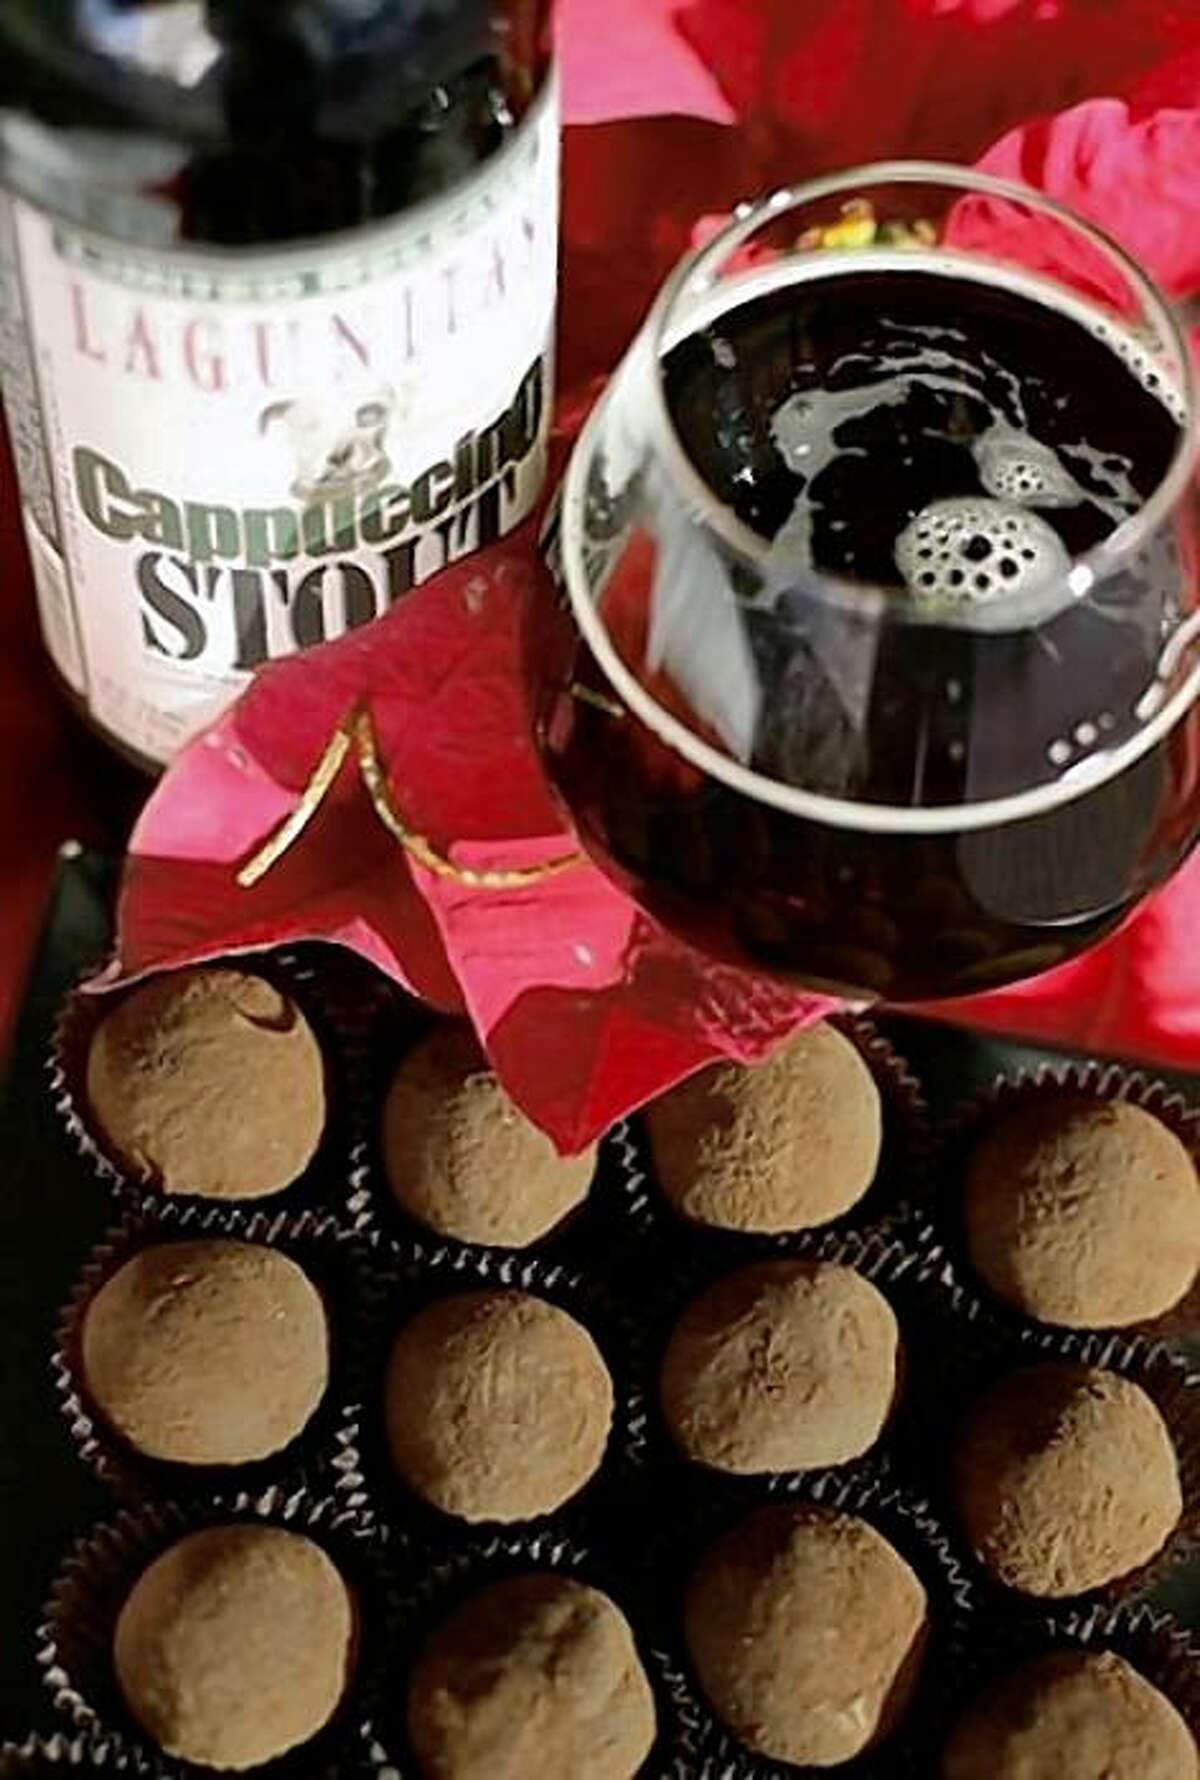 Beer and chocolate will be available at the BevMo! Holiday Beer Fest at Fort Mason.